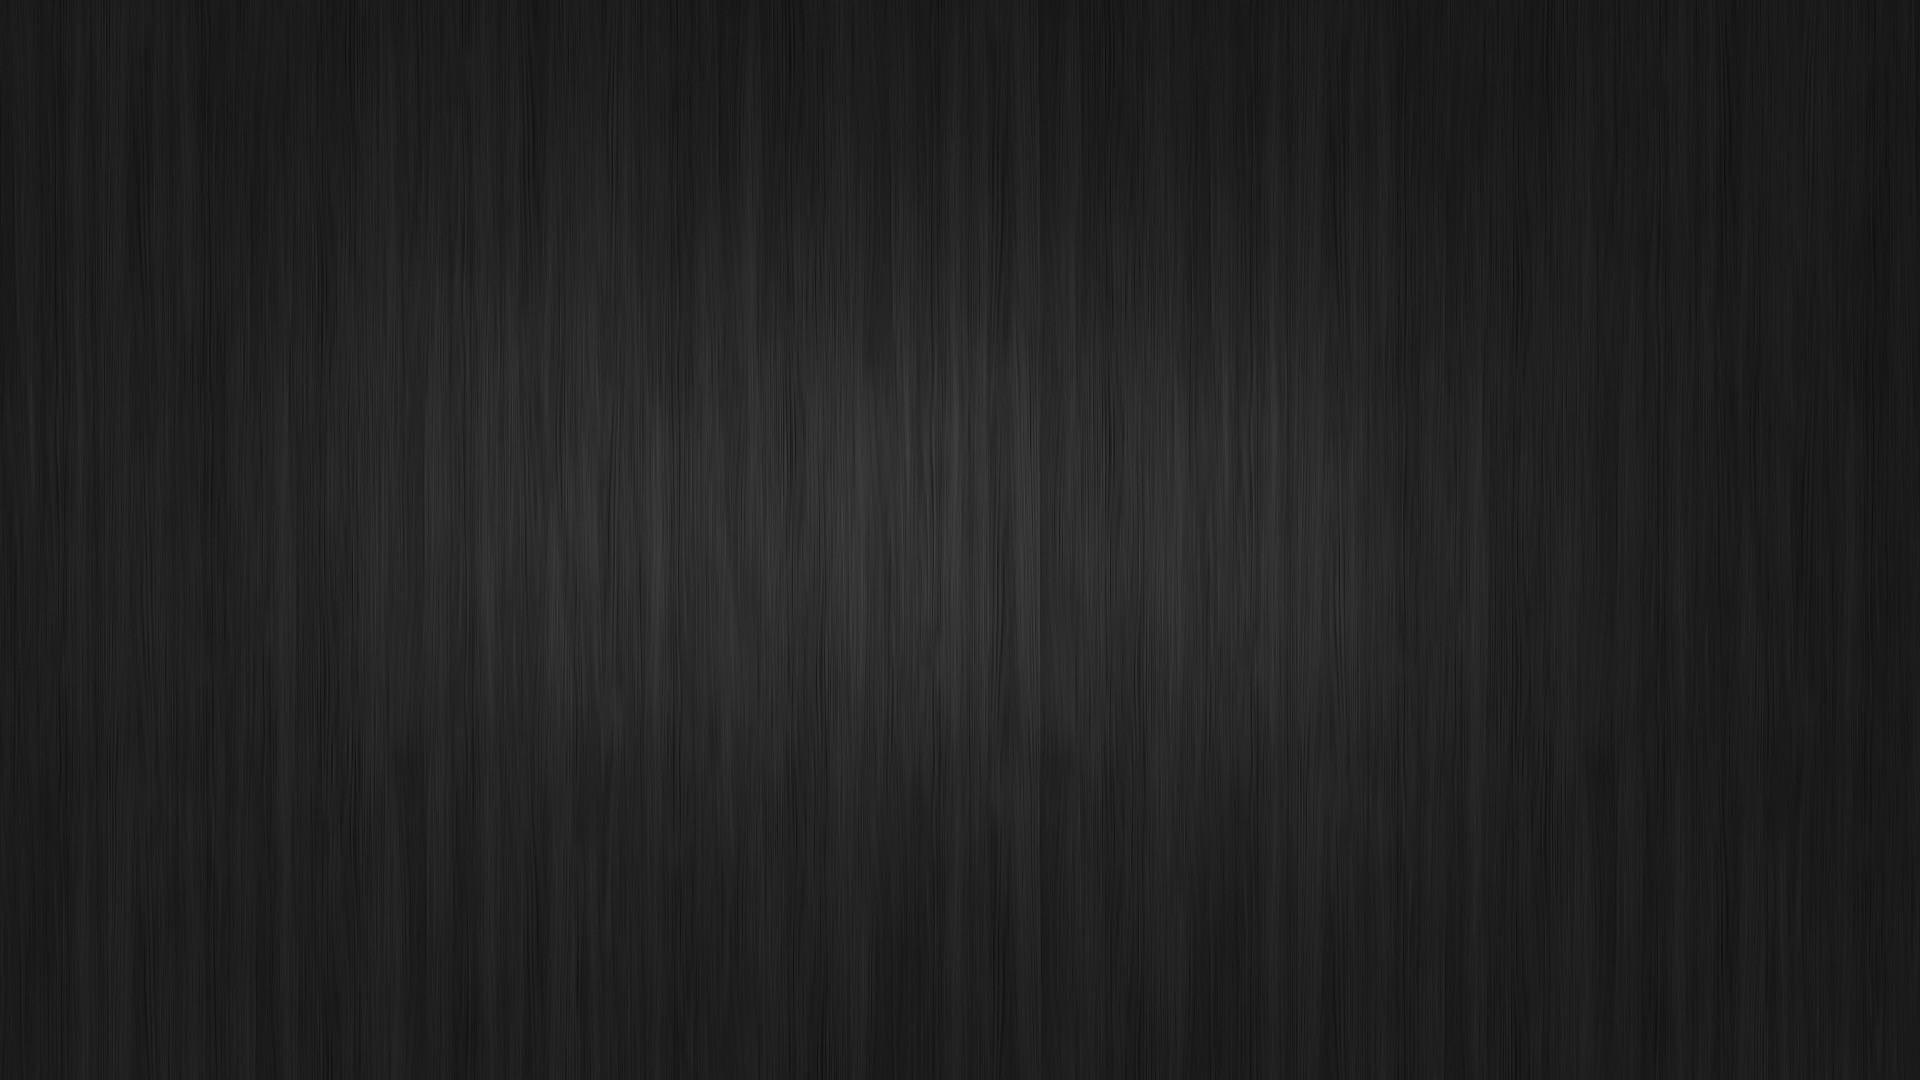 Best hd dark photos. Band vertical background dark 1920×1080